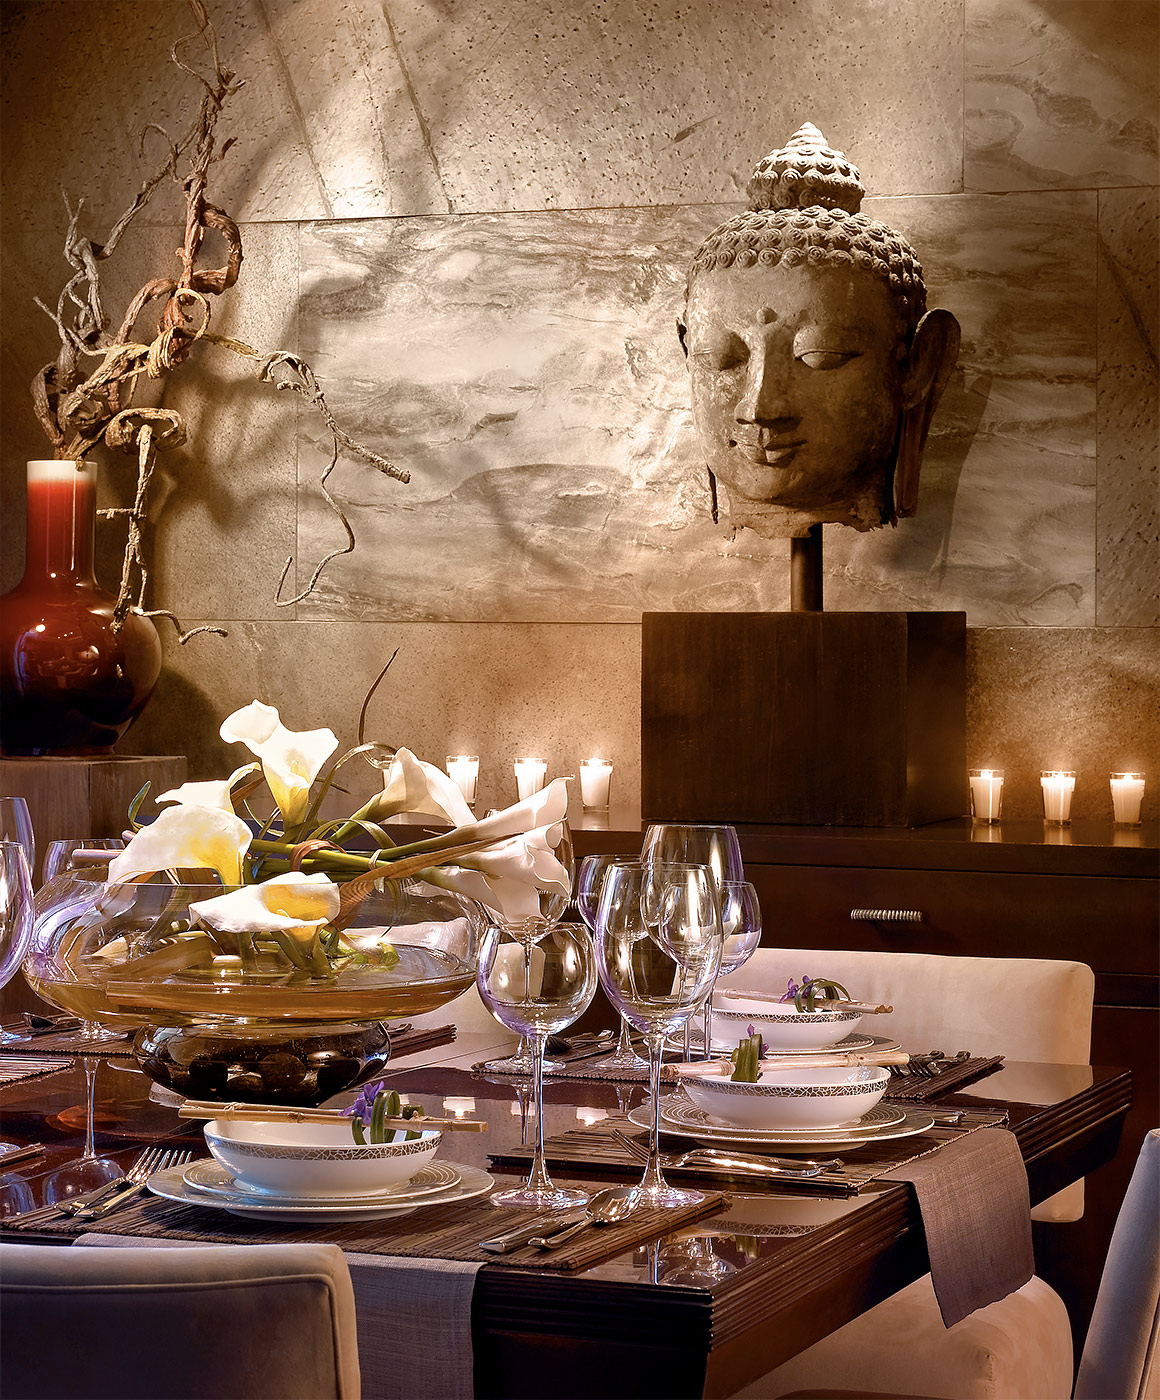 Zen-Dining-Close-Candles-Decor